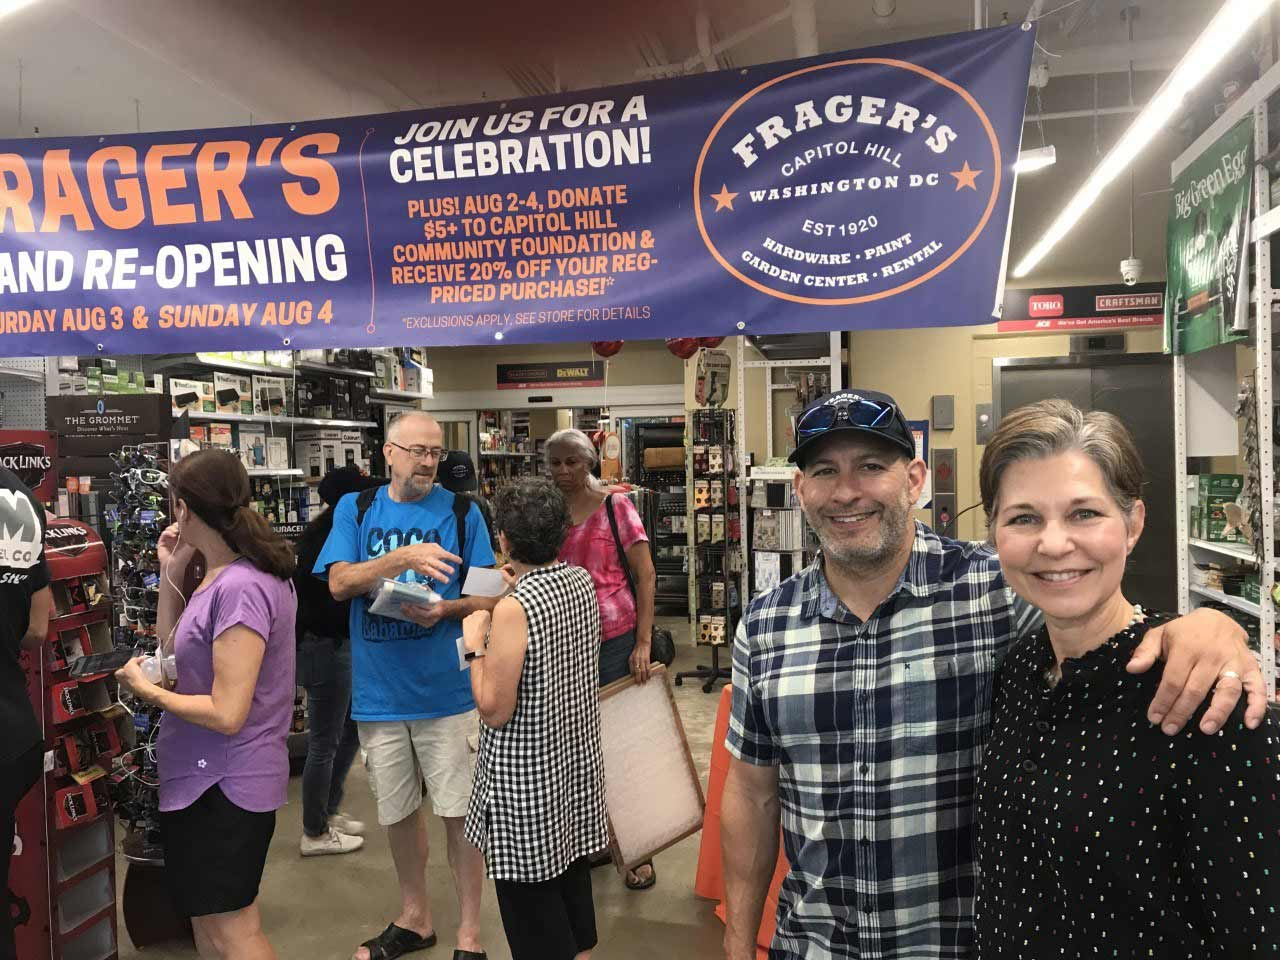 Marc Friedman and Gina Schaefer at the grand reopening at the store's original location in August 2019, two years after they bought Frager's Hardware from John Weintraub.